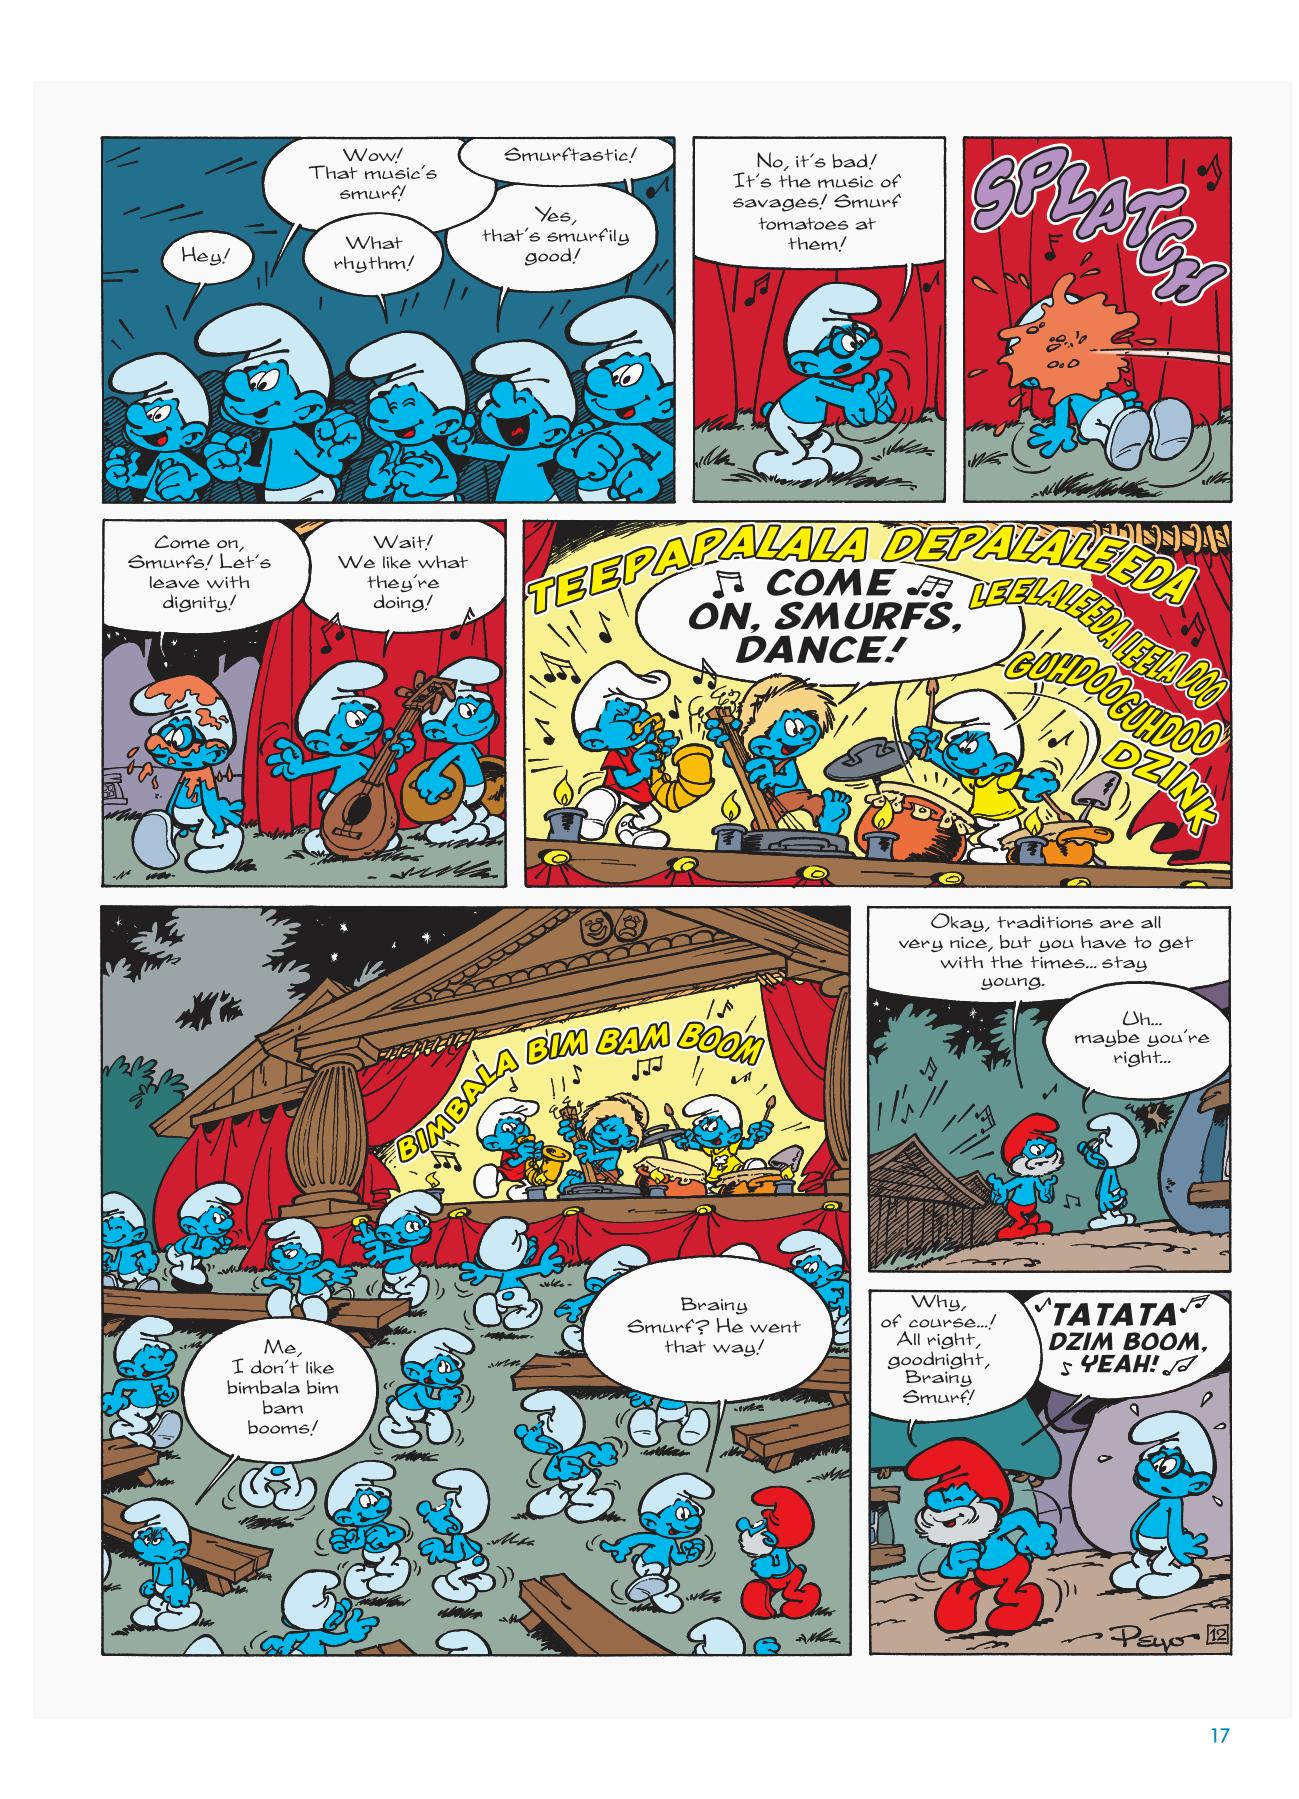 The Smurflings review